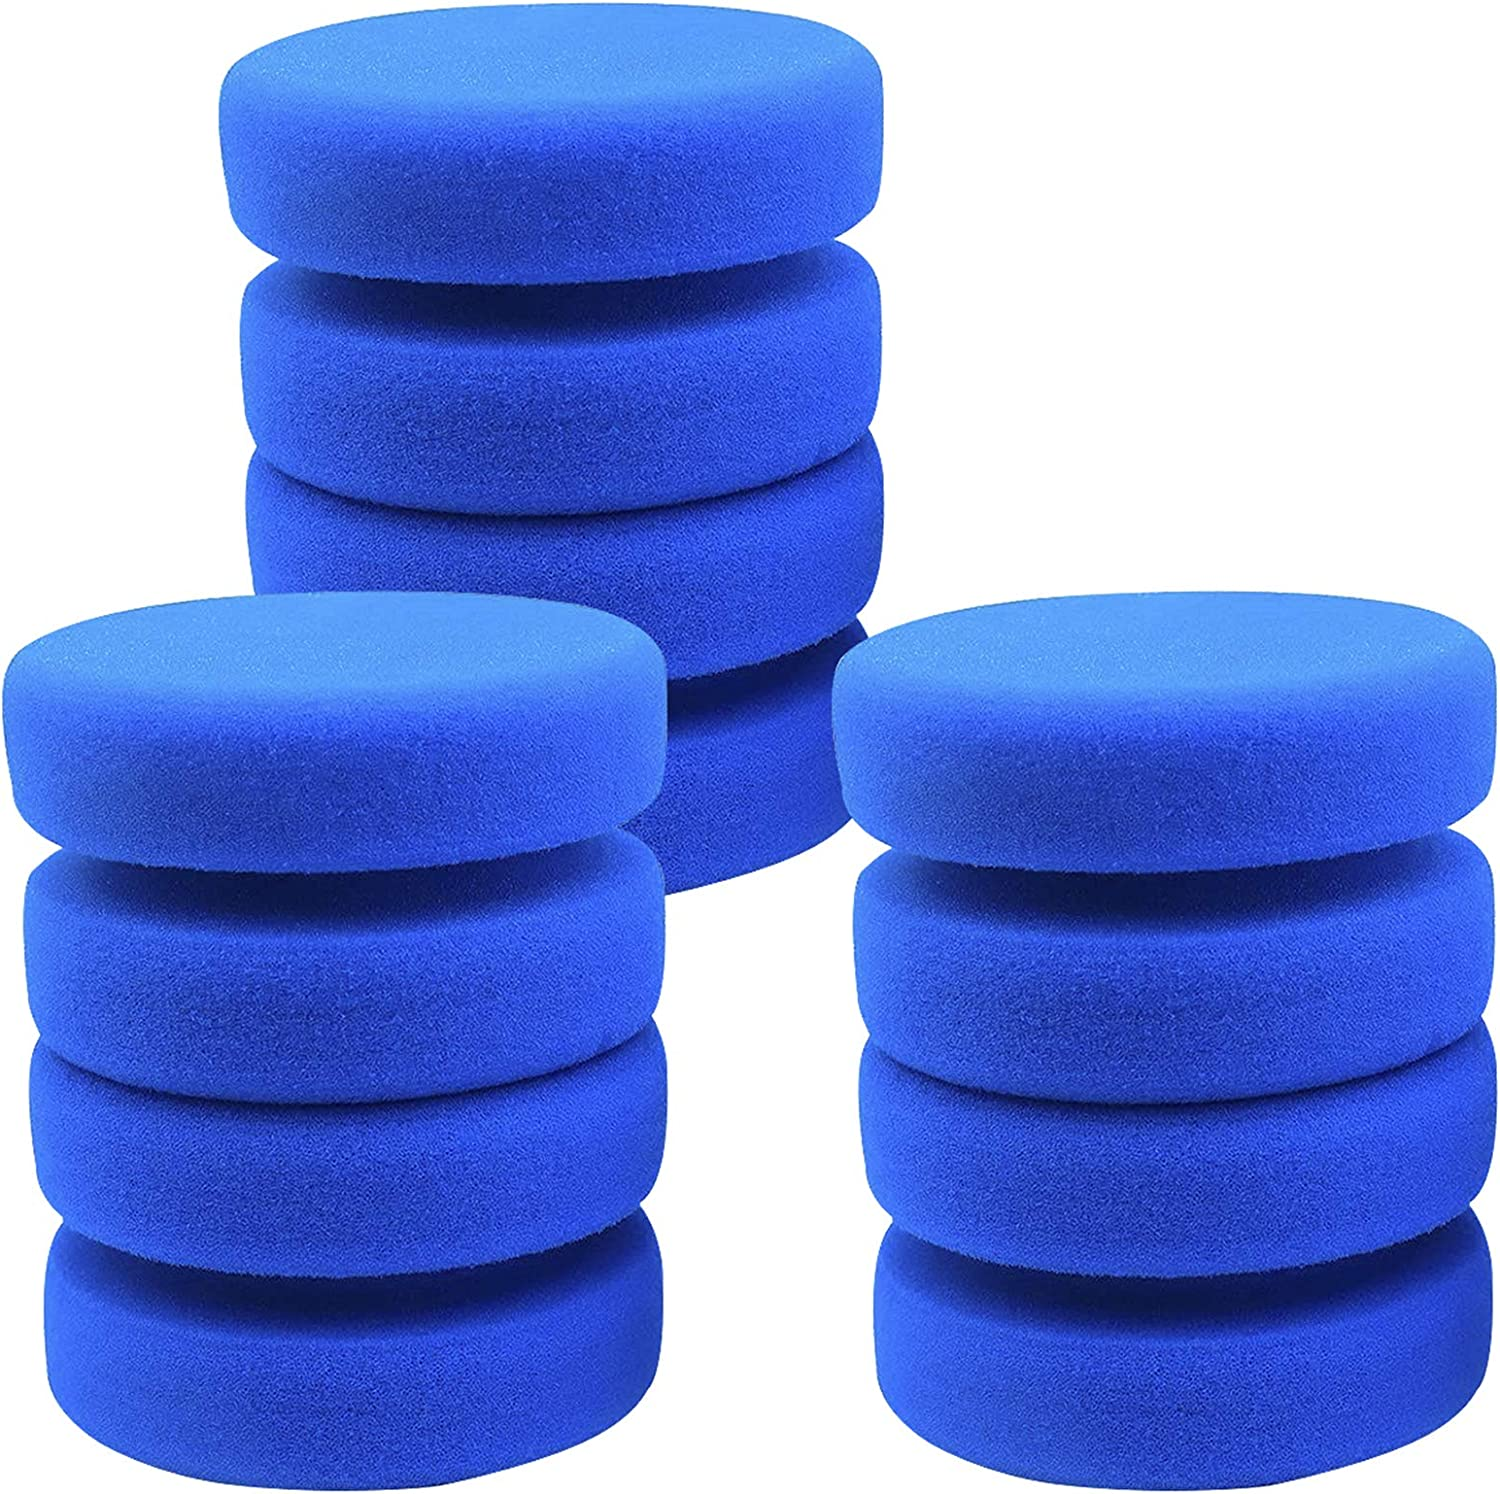 6 Sets Paint Sponge Applicator- 3 Inches Circular Watercolors Sponges Multipurpose Double-Dual Sided Painting Sponge for Art & Craft Pottery Cleaning Use, Car Waxing Sponge